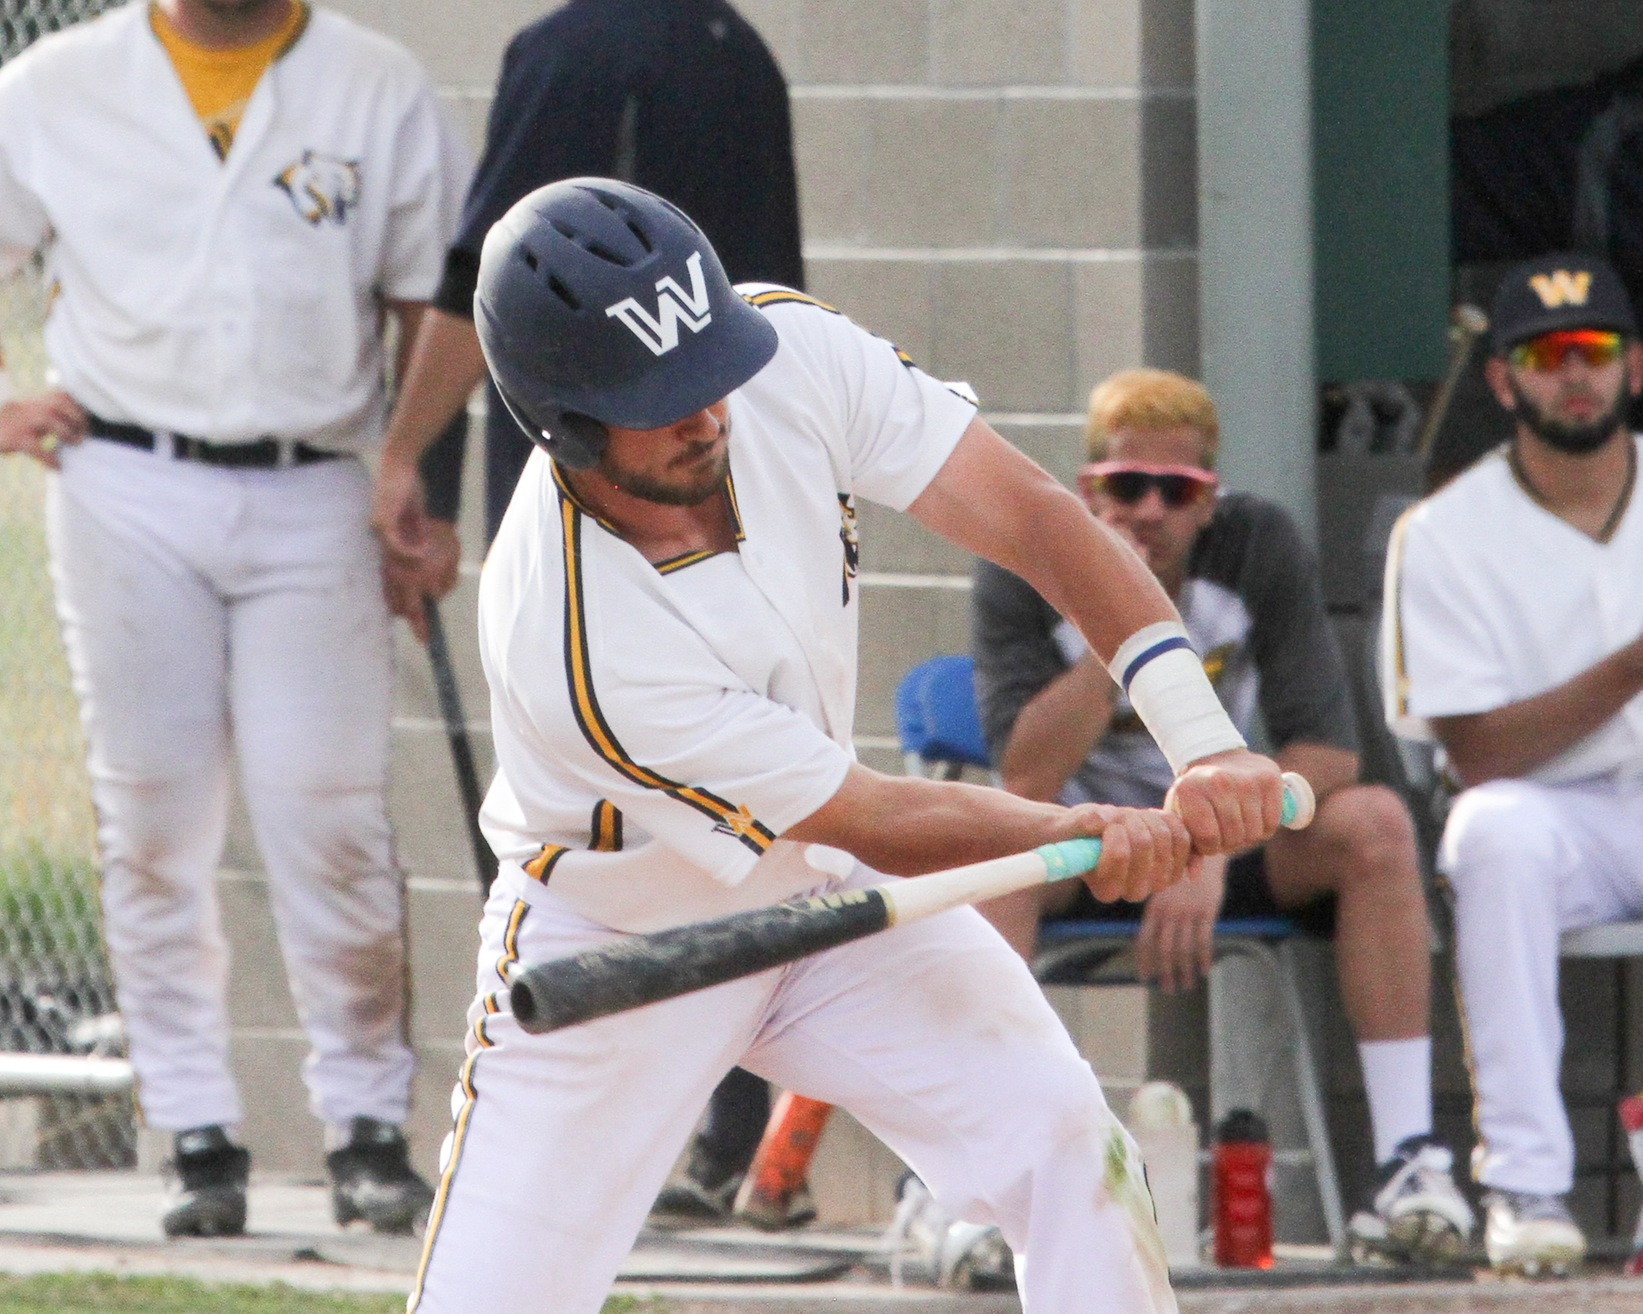 WNCC baseball sweeps NJC, needs one win Sunday to win conference title